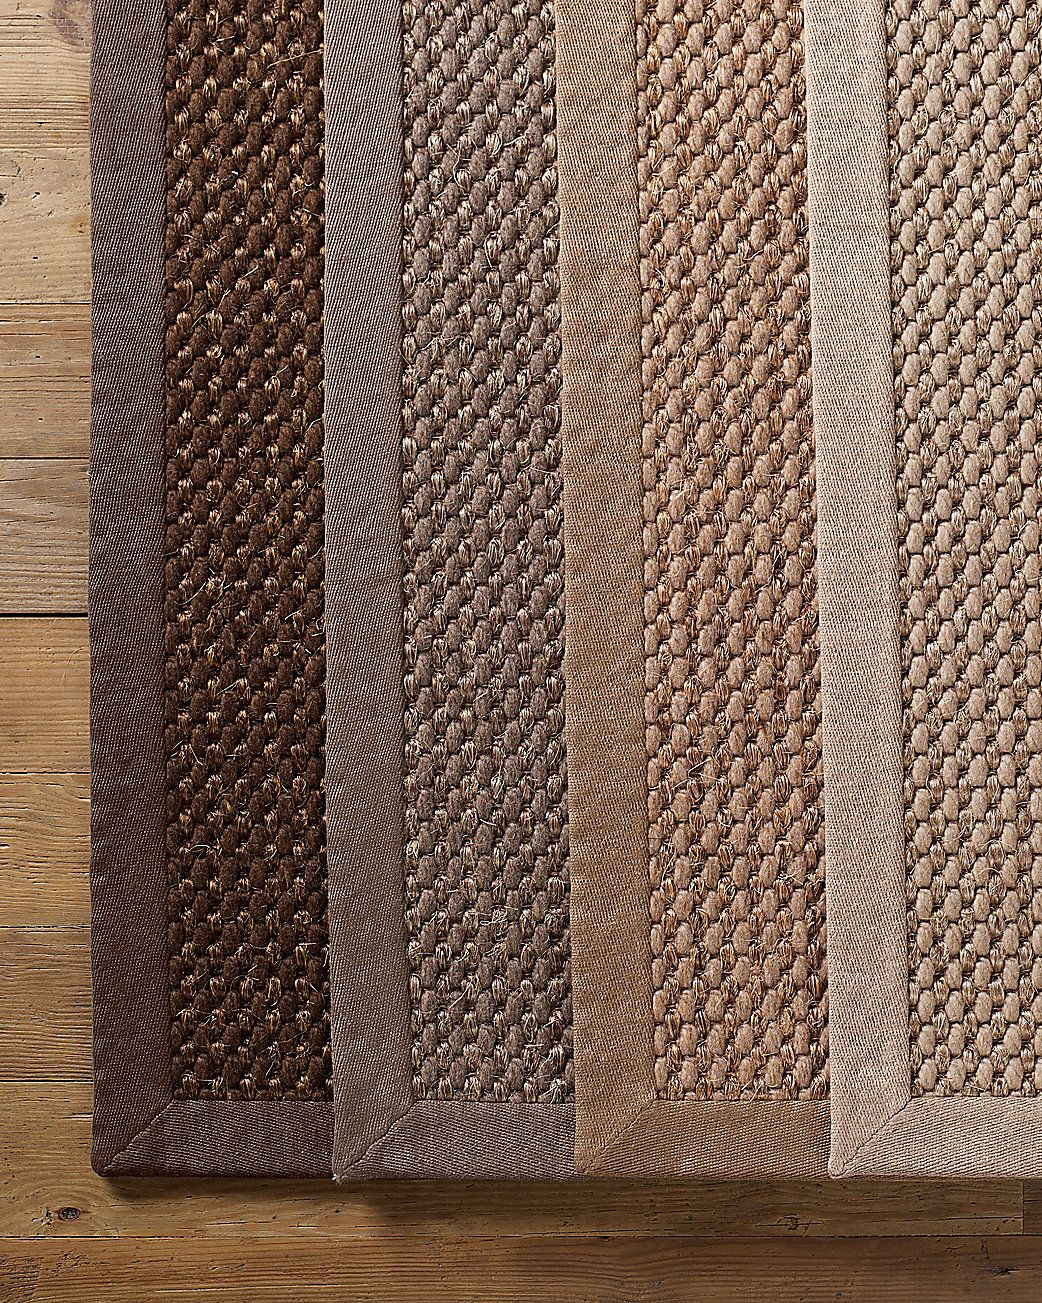 living carpet diamond of with awesome room free depot bali sisal wonderful porto m modern taupe mat high per area rug traffic contemporary and for areas jute home your mats interior